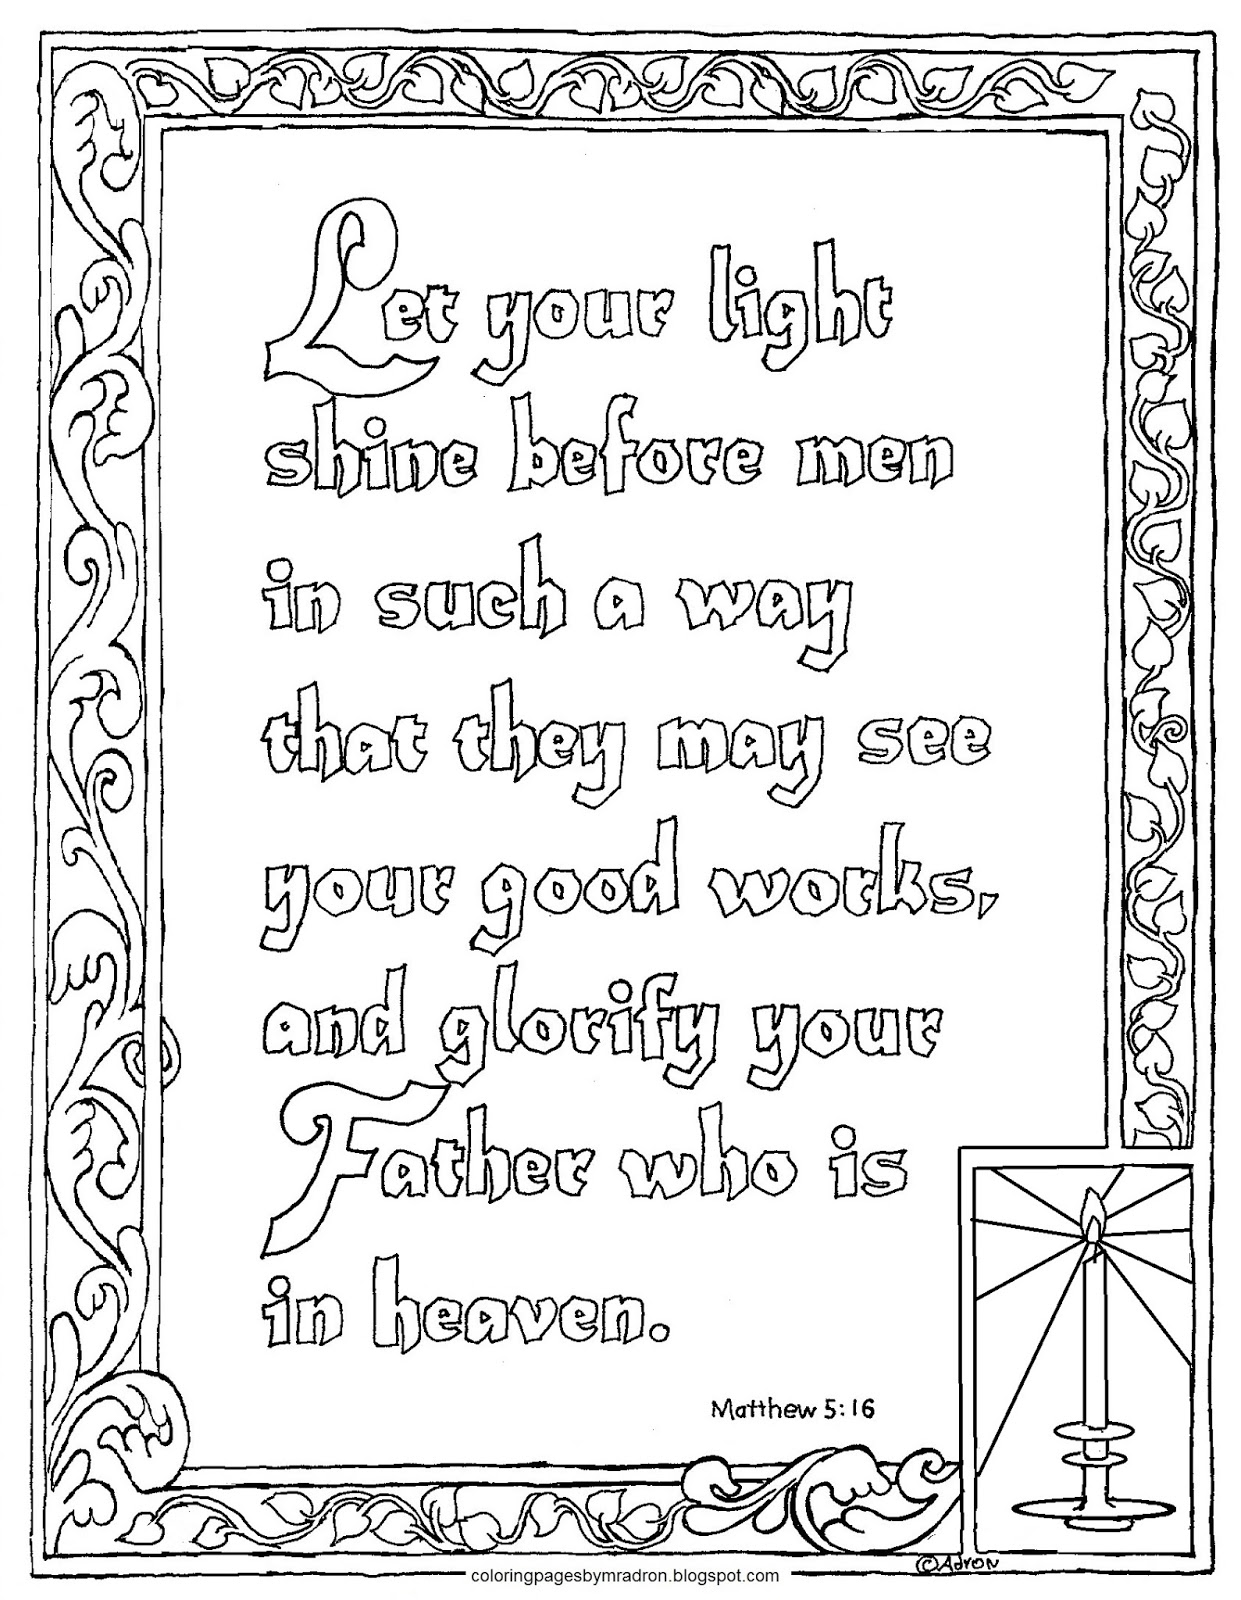 coloring pages for kids by mr adron printable matthew 5 16 let